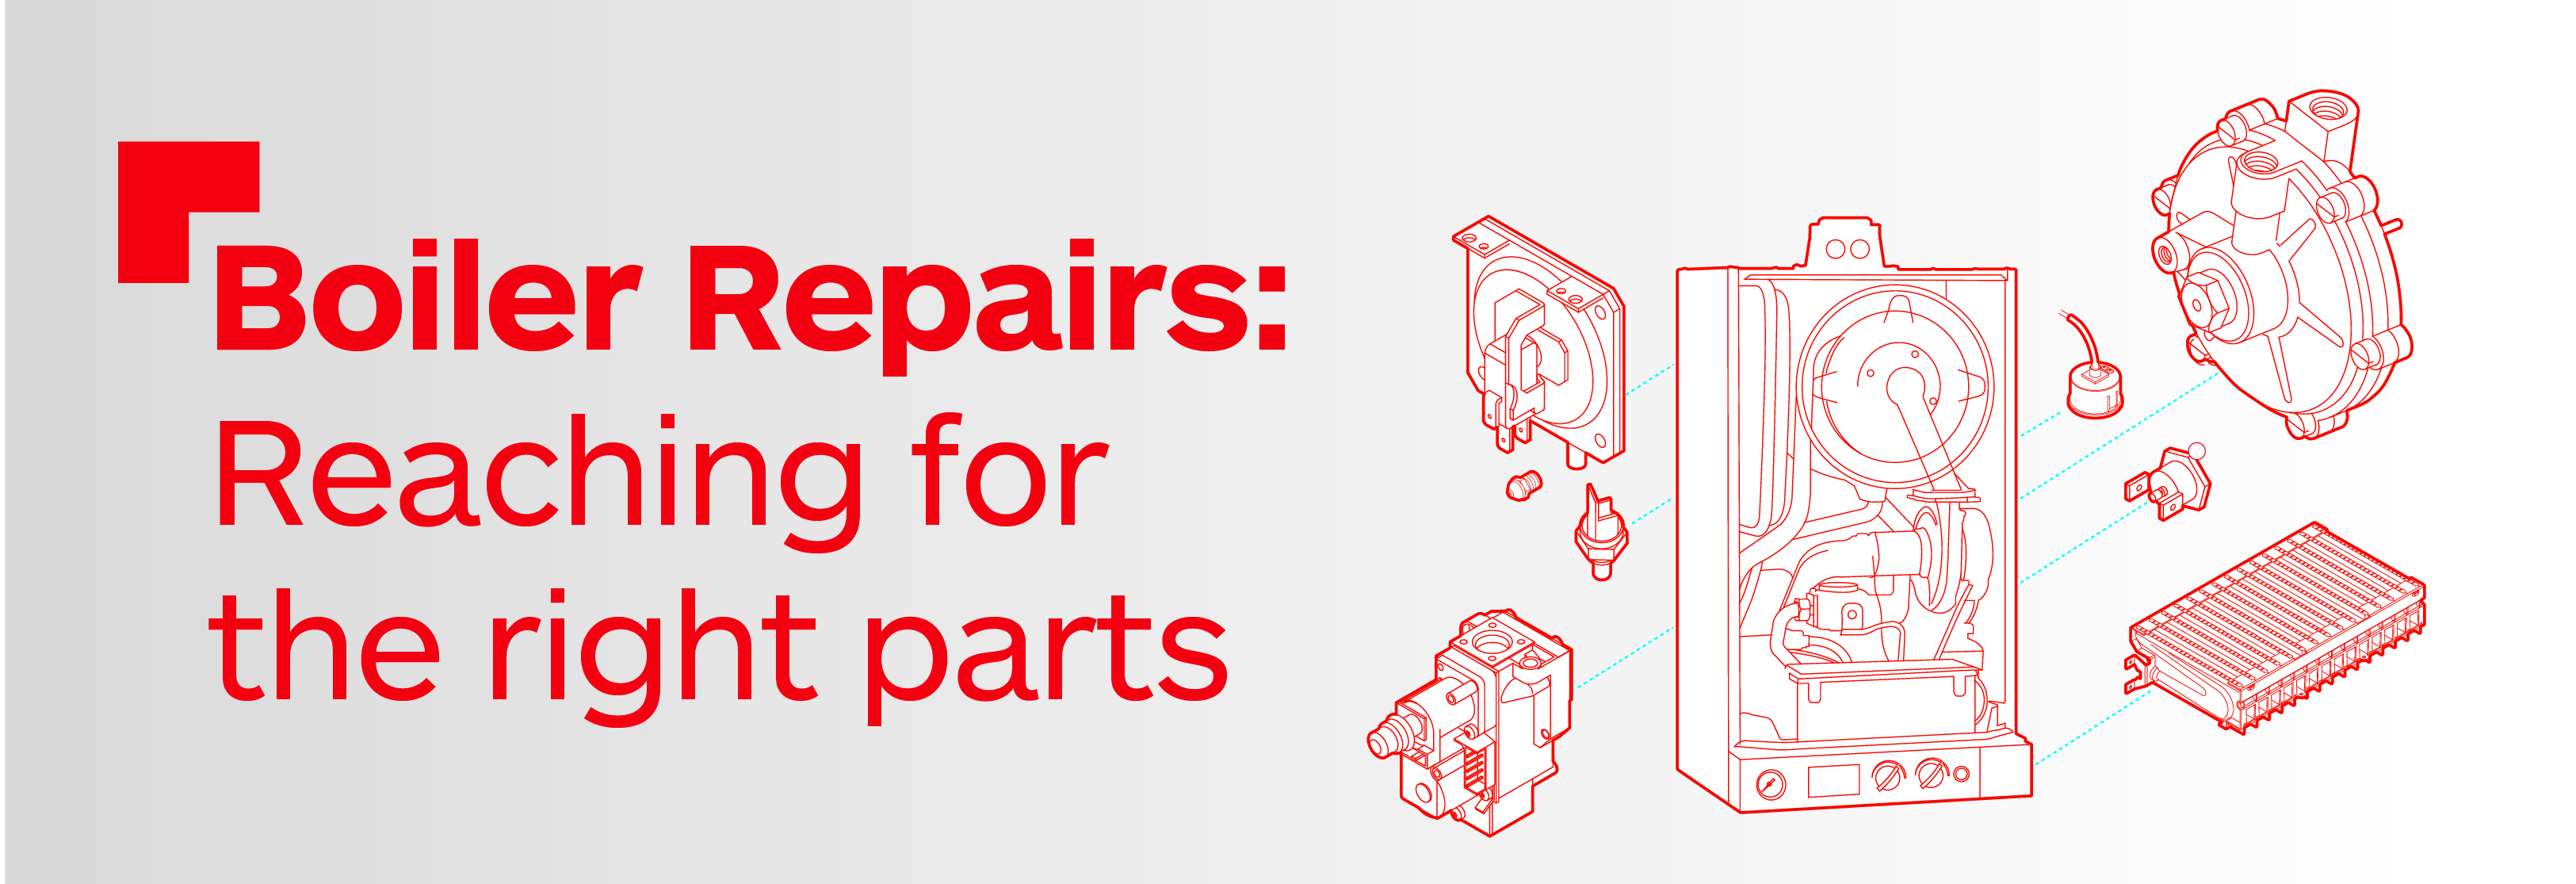 Boiler repairs: Reaching for the right parts